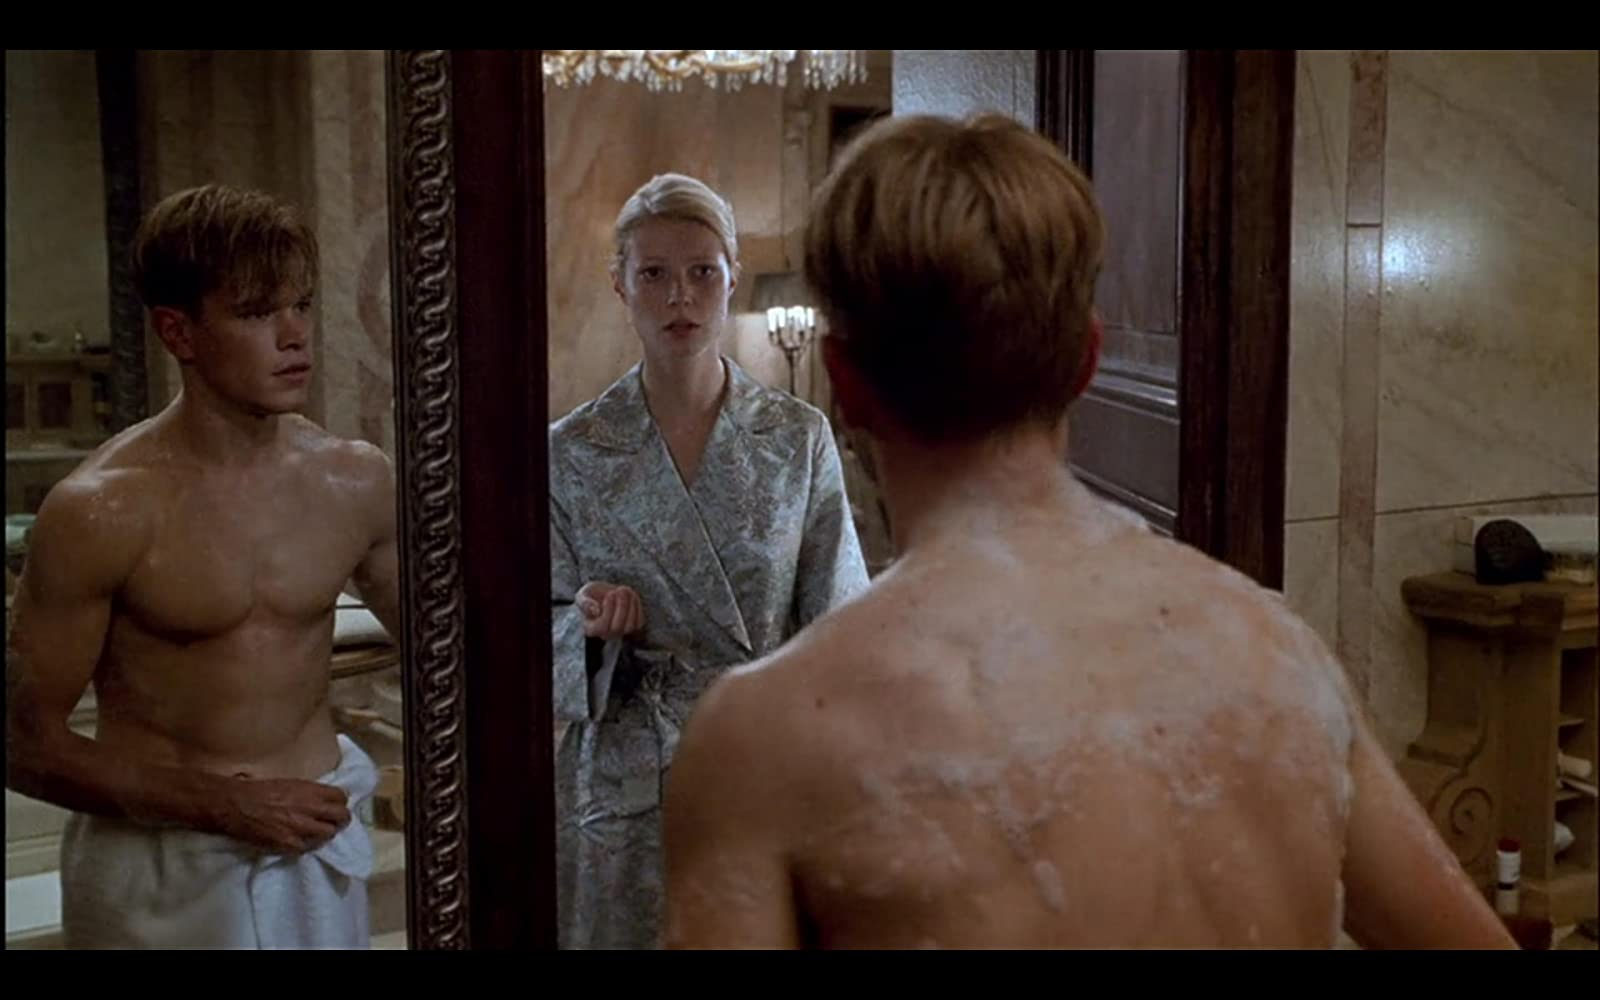 Matt Damon and Gwyneth Paltrow in The Talented Mr. Ripley (1999)